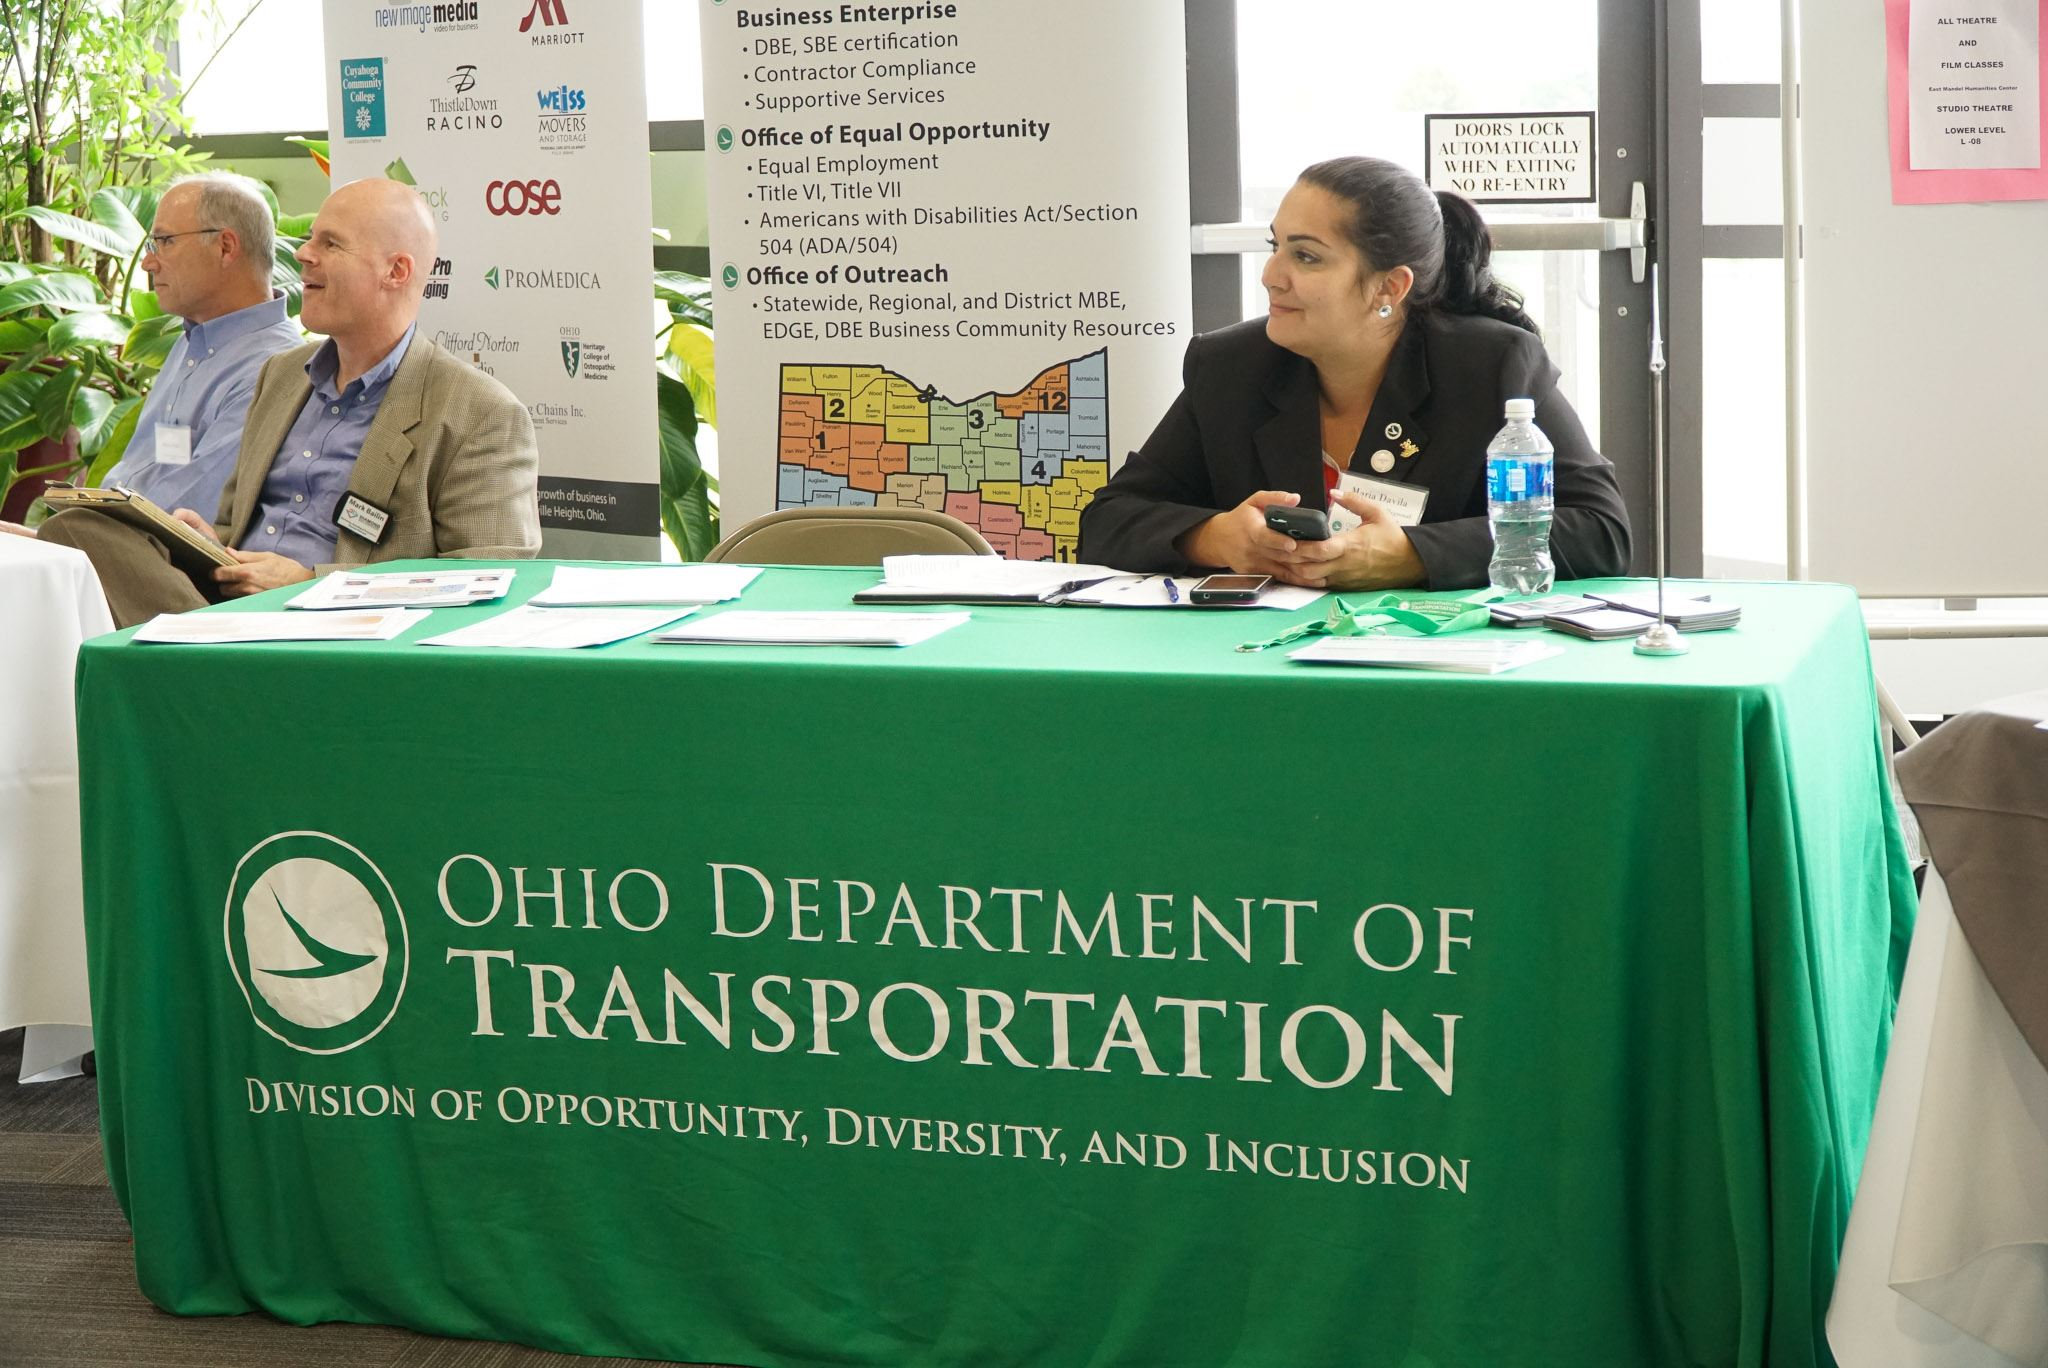 Ohio Department of Transportation table set up at an event